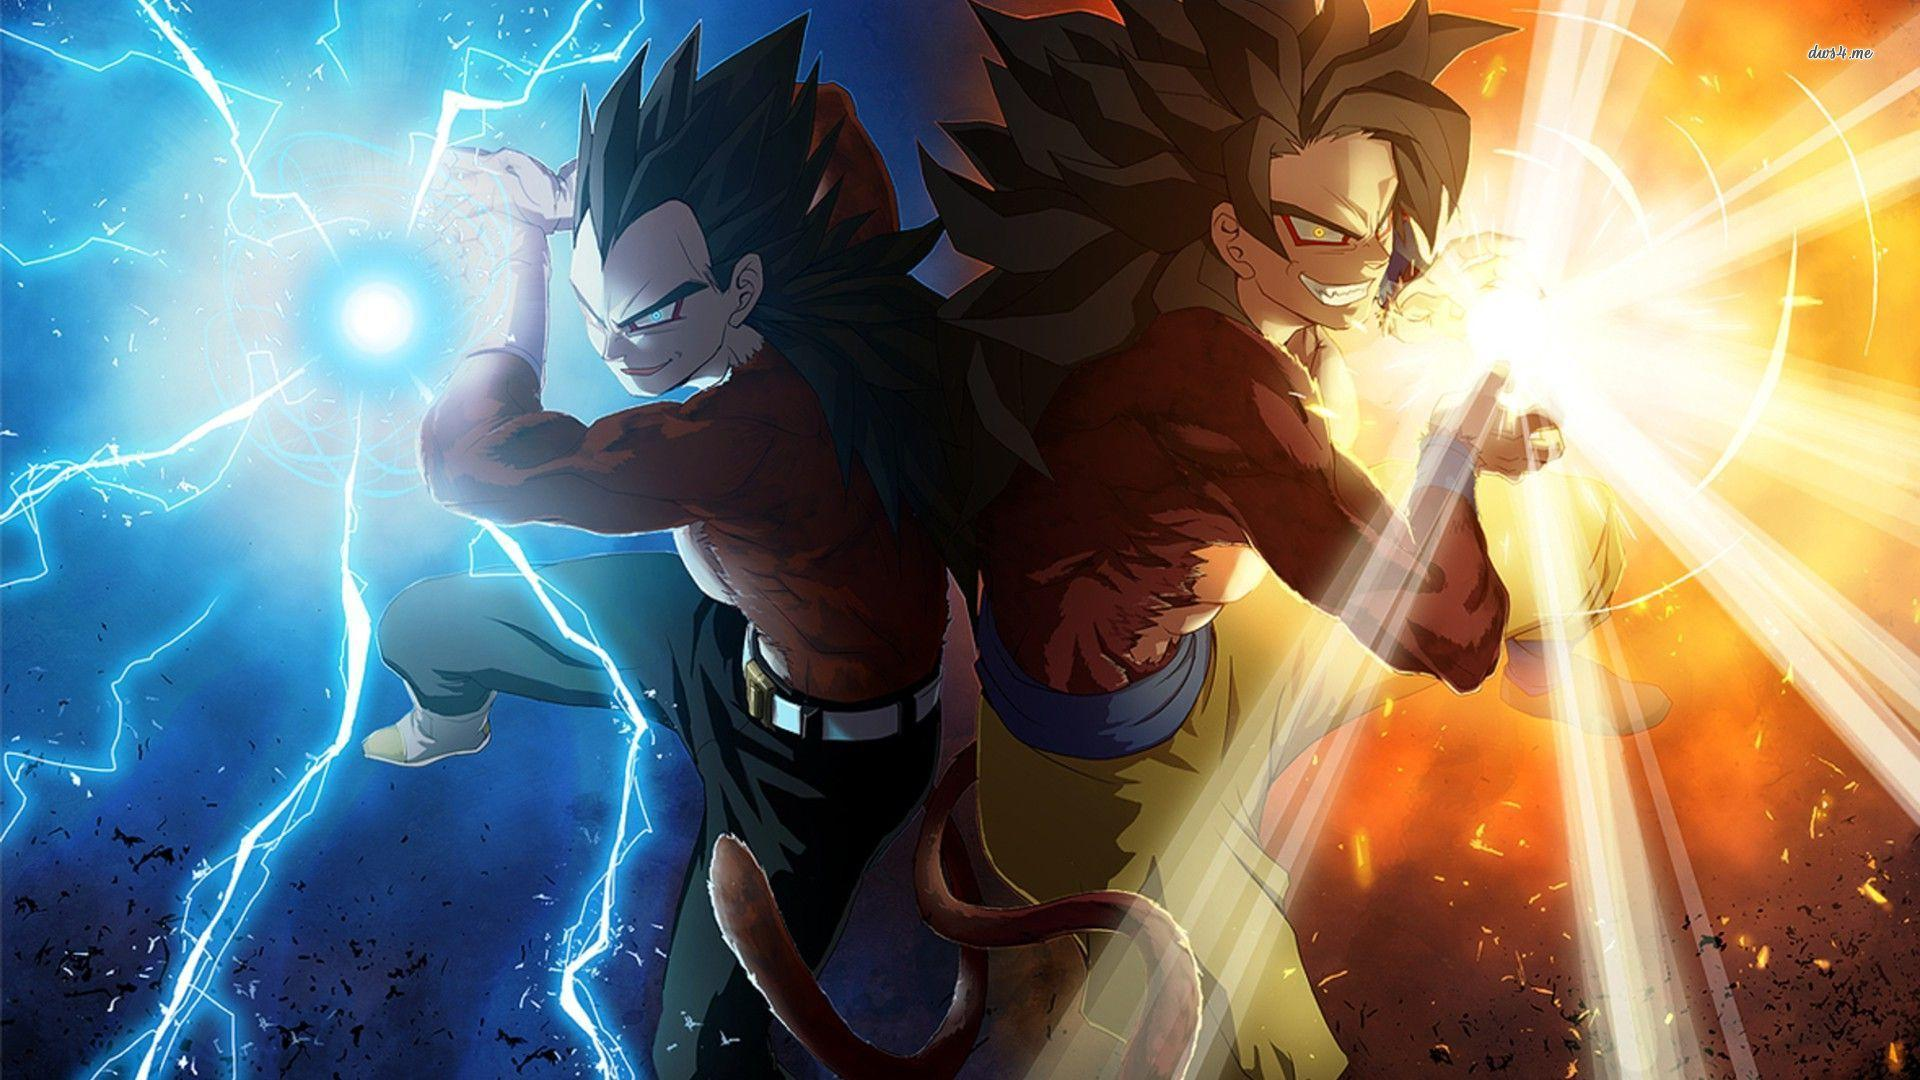 Dragon Ball Z Dual Monitor Wallpaper Freewallanime